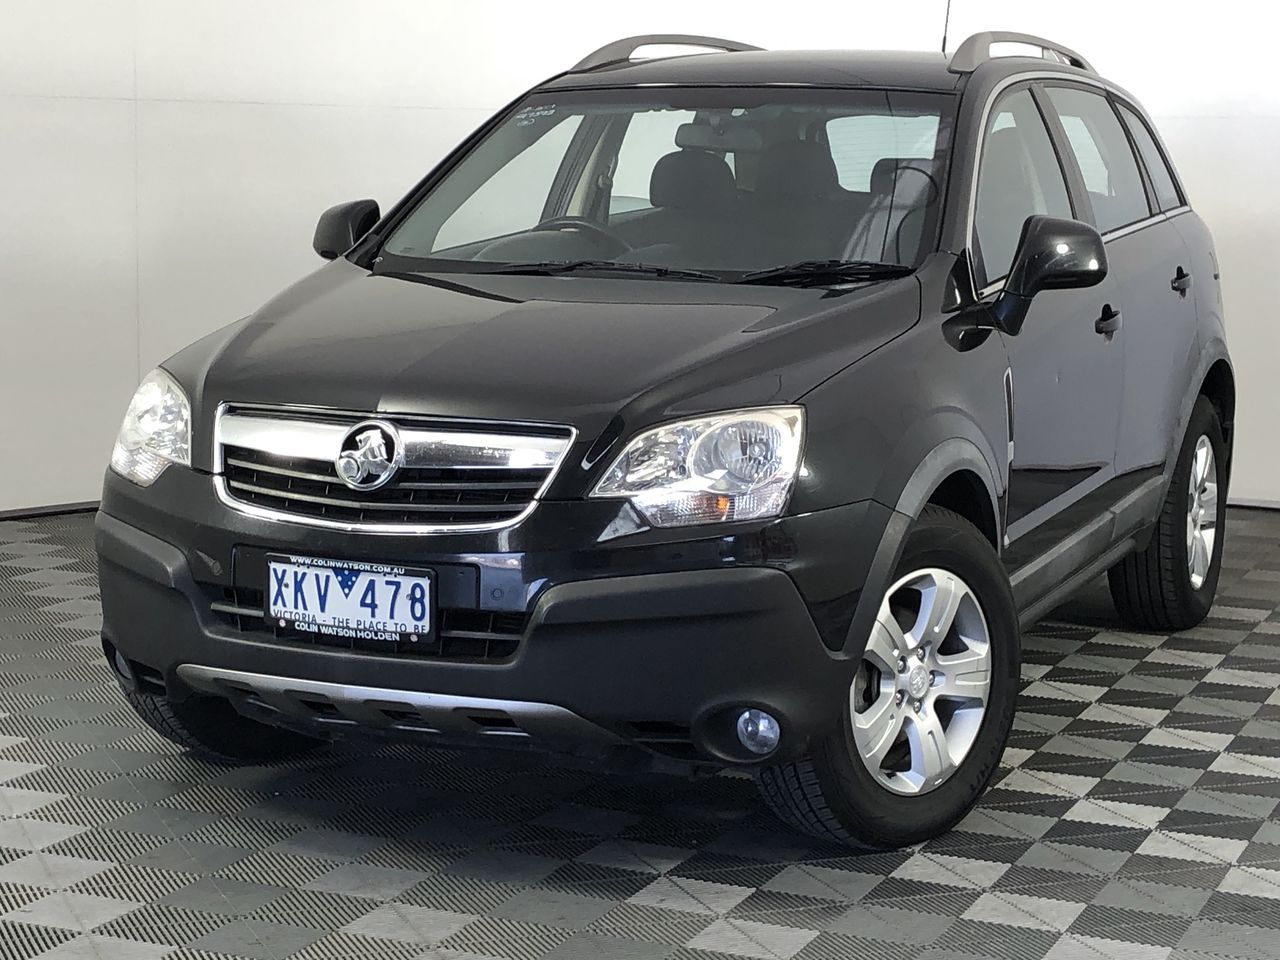 2009 Holden Captiva 5 (4x4) CG Automatic Wagon